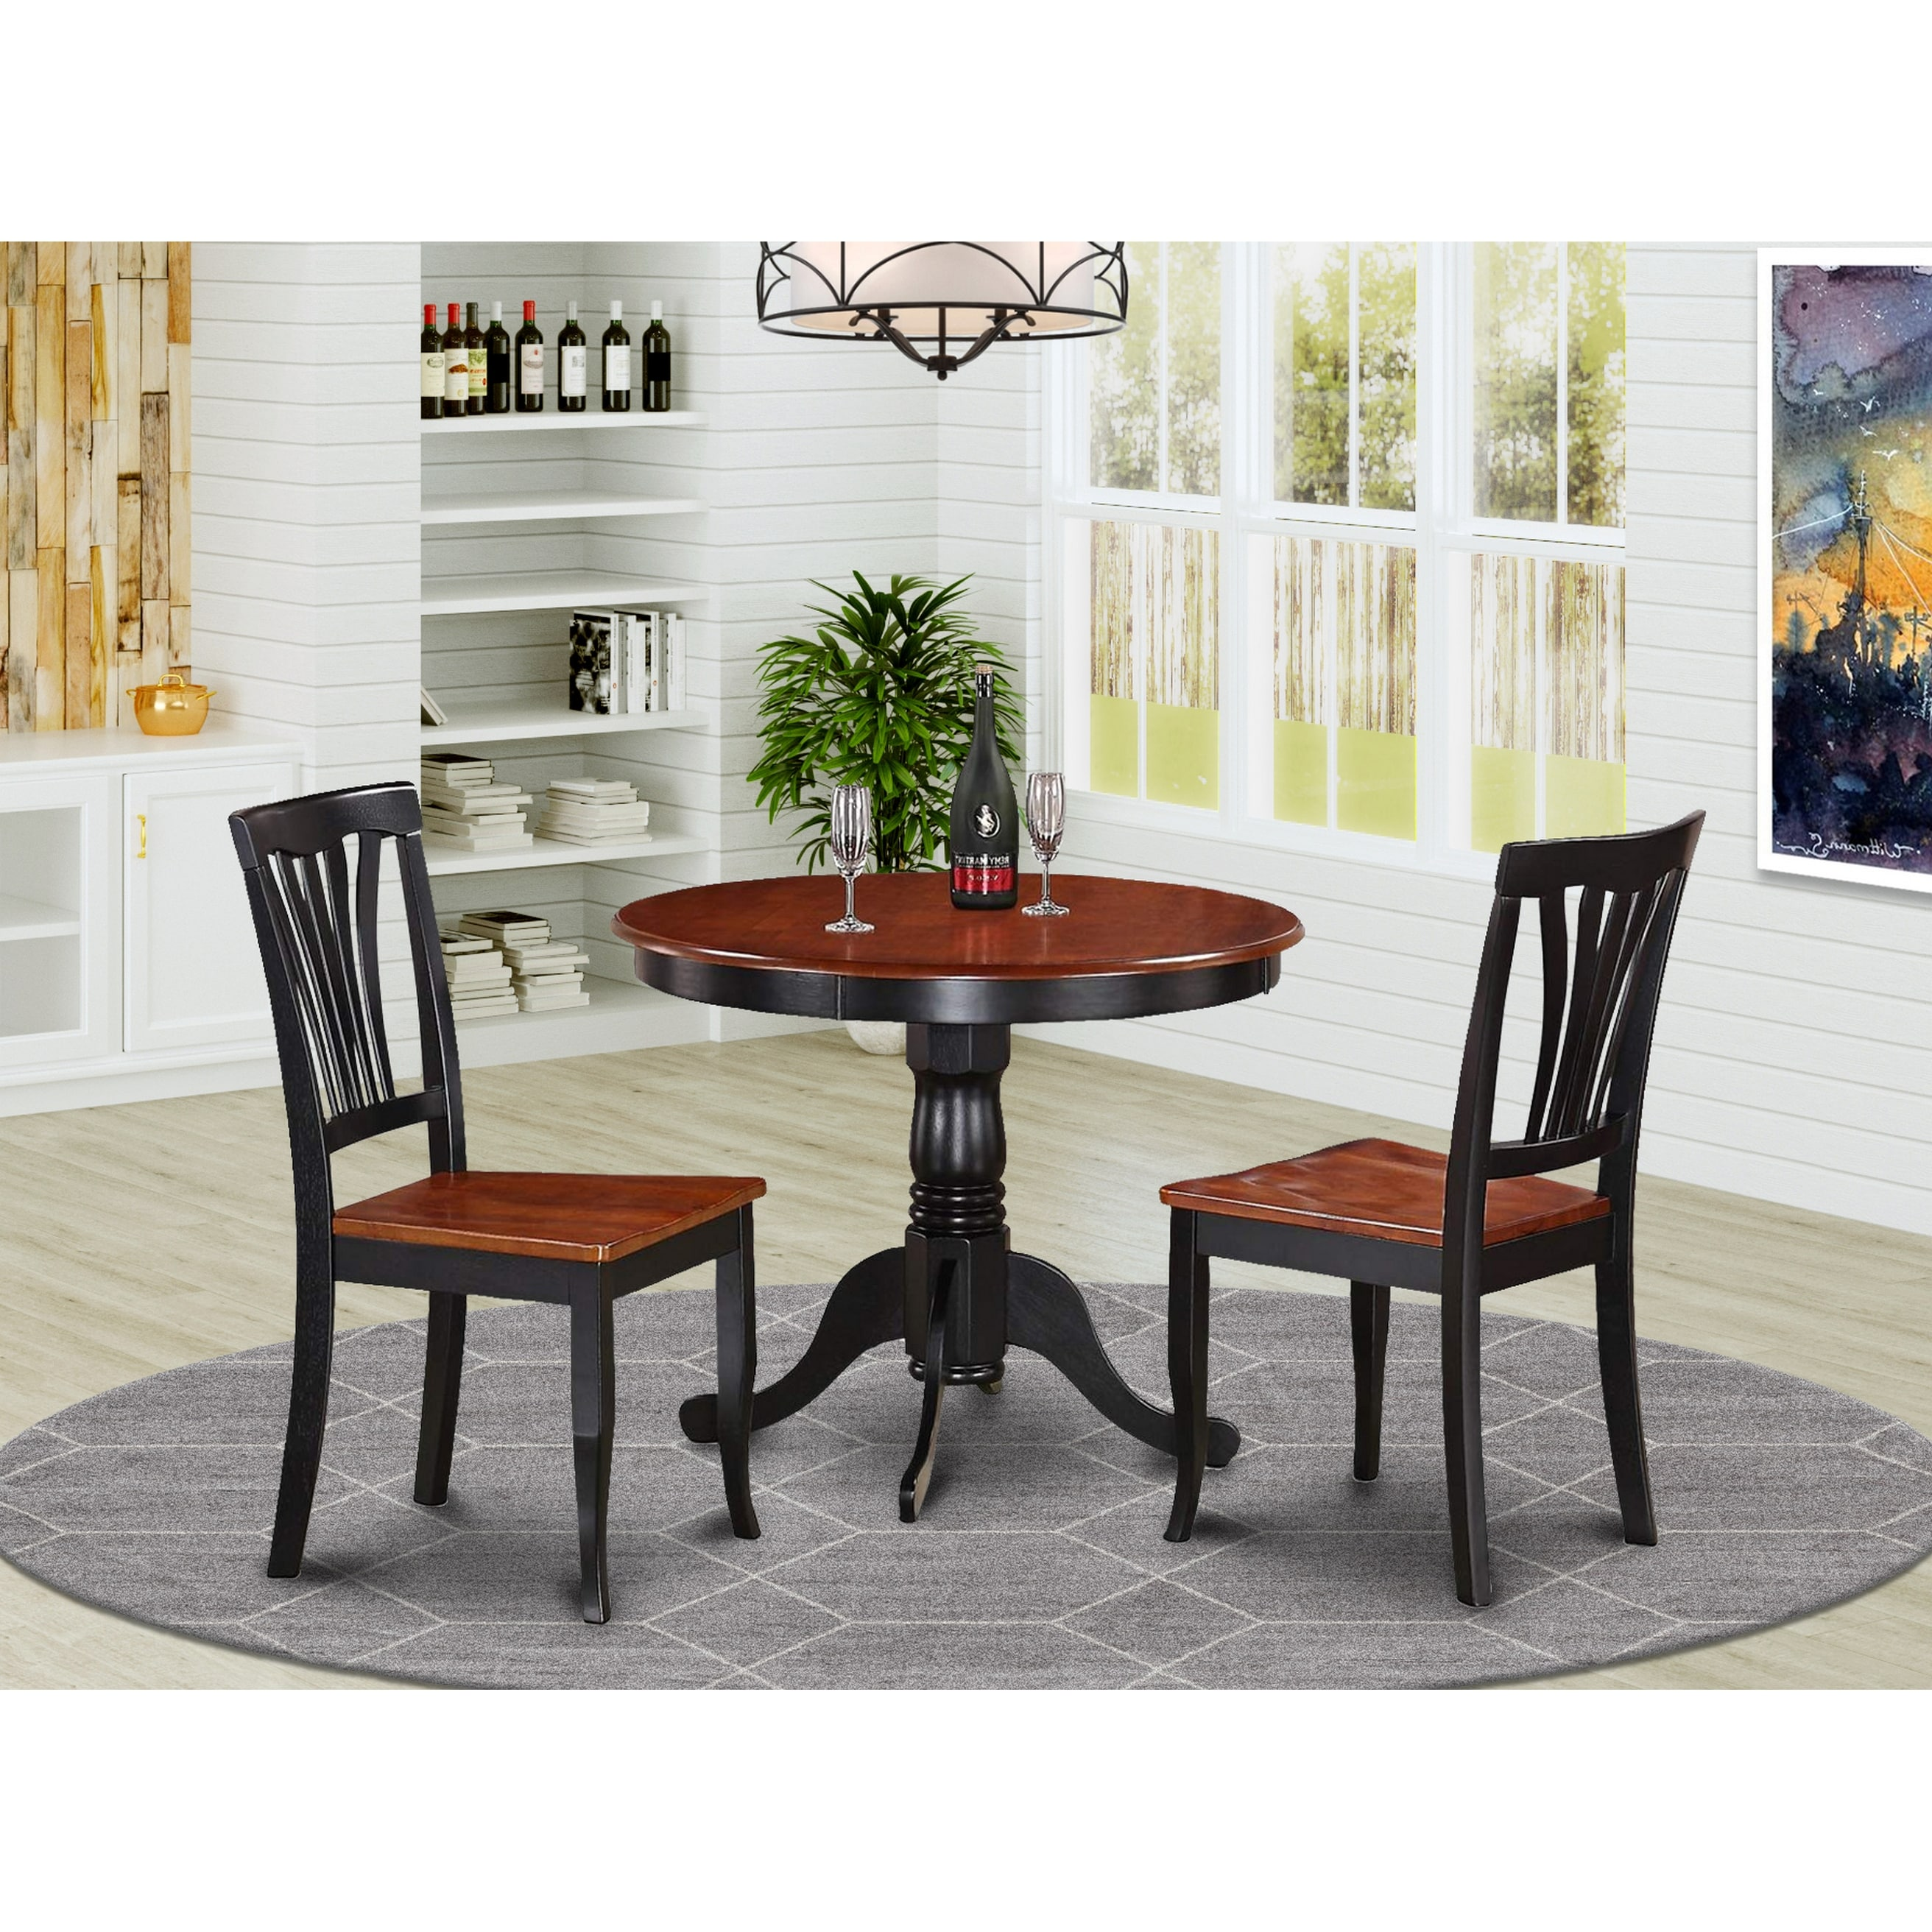 3 Piece Kitchen Nook Dining Set On Sale Overstock 10200001